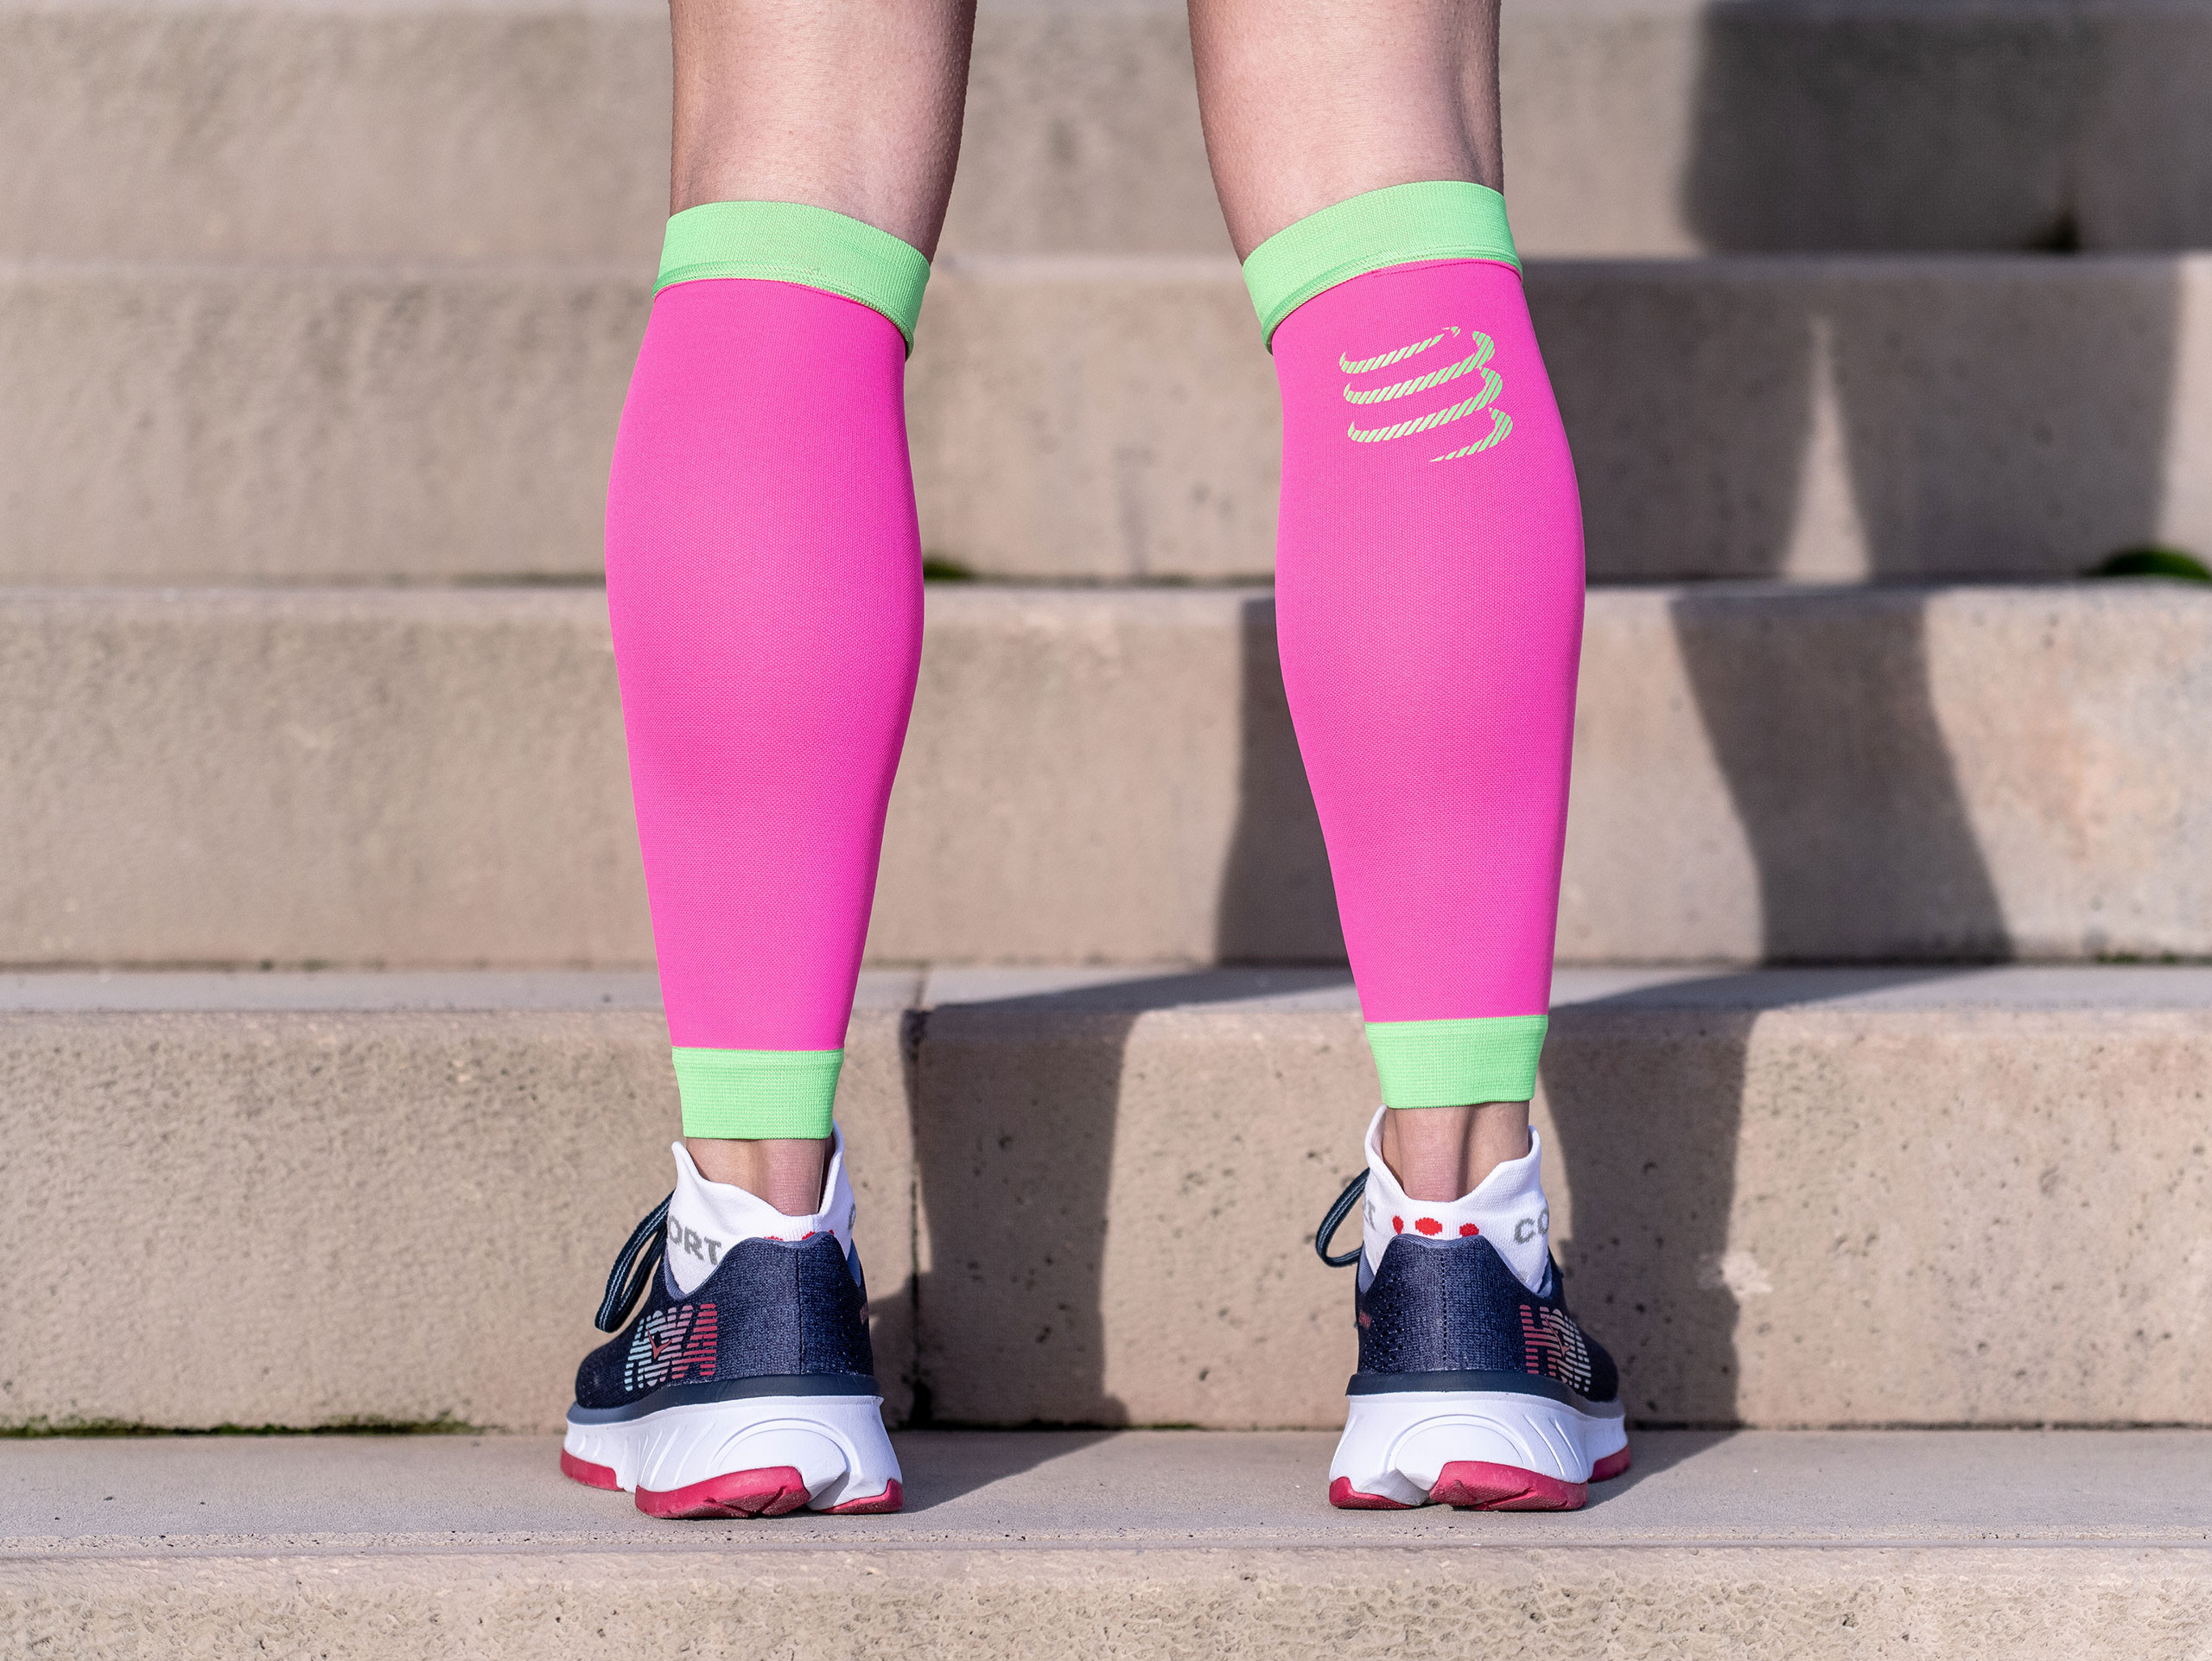 R2V2 calf sleeves fluo pink